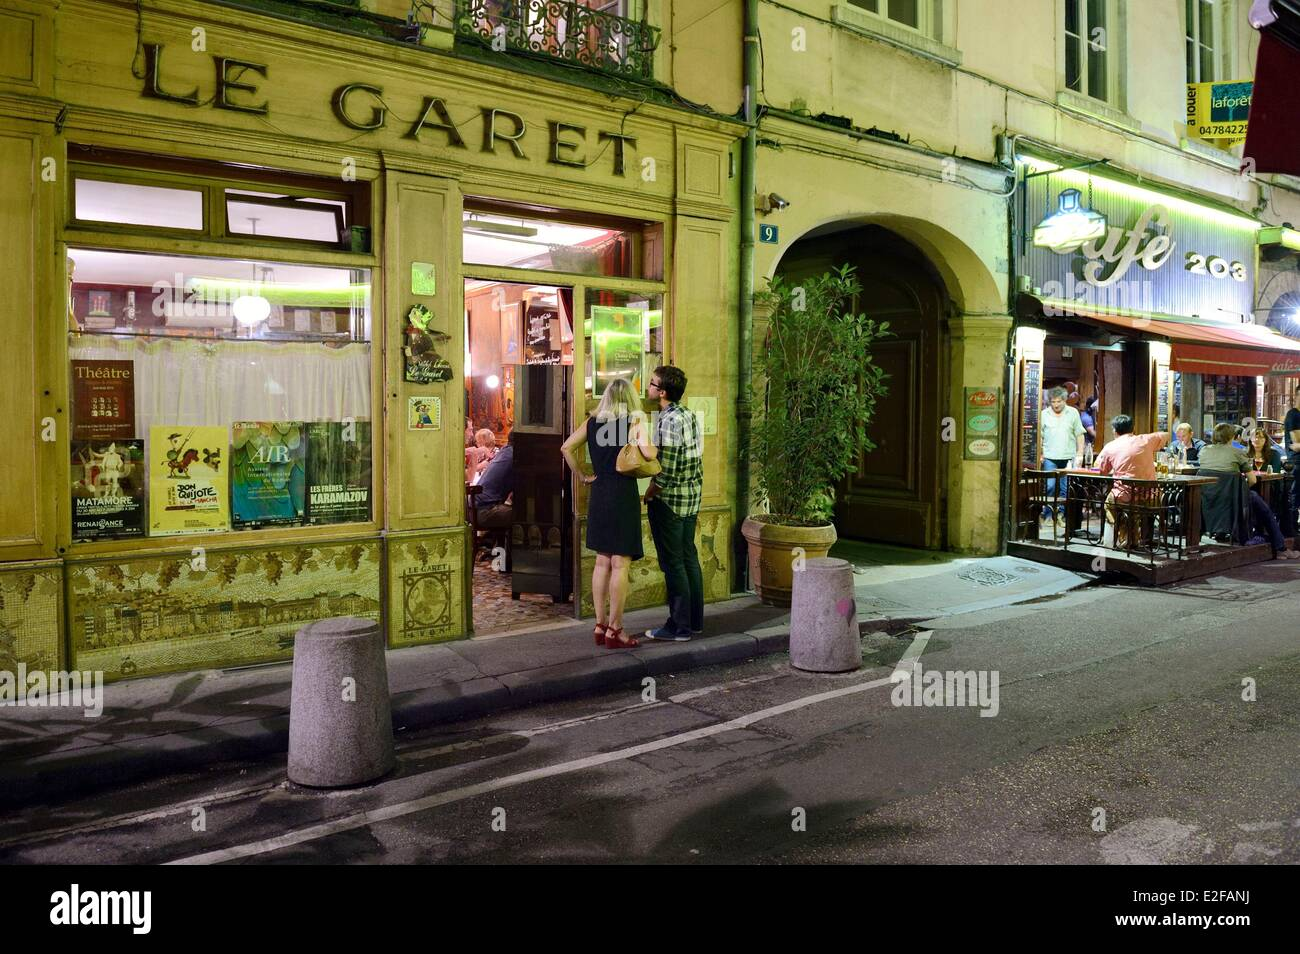 france rhone lyon restaurant bouchon lyonnais le garet the hero stock photo royalty free. Black Bedroom Furniture Sets. Home Design Ideas